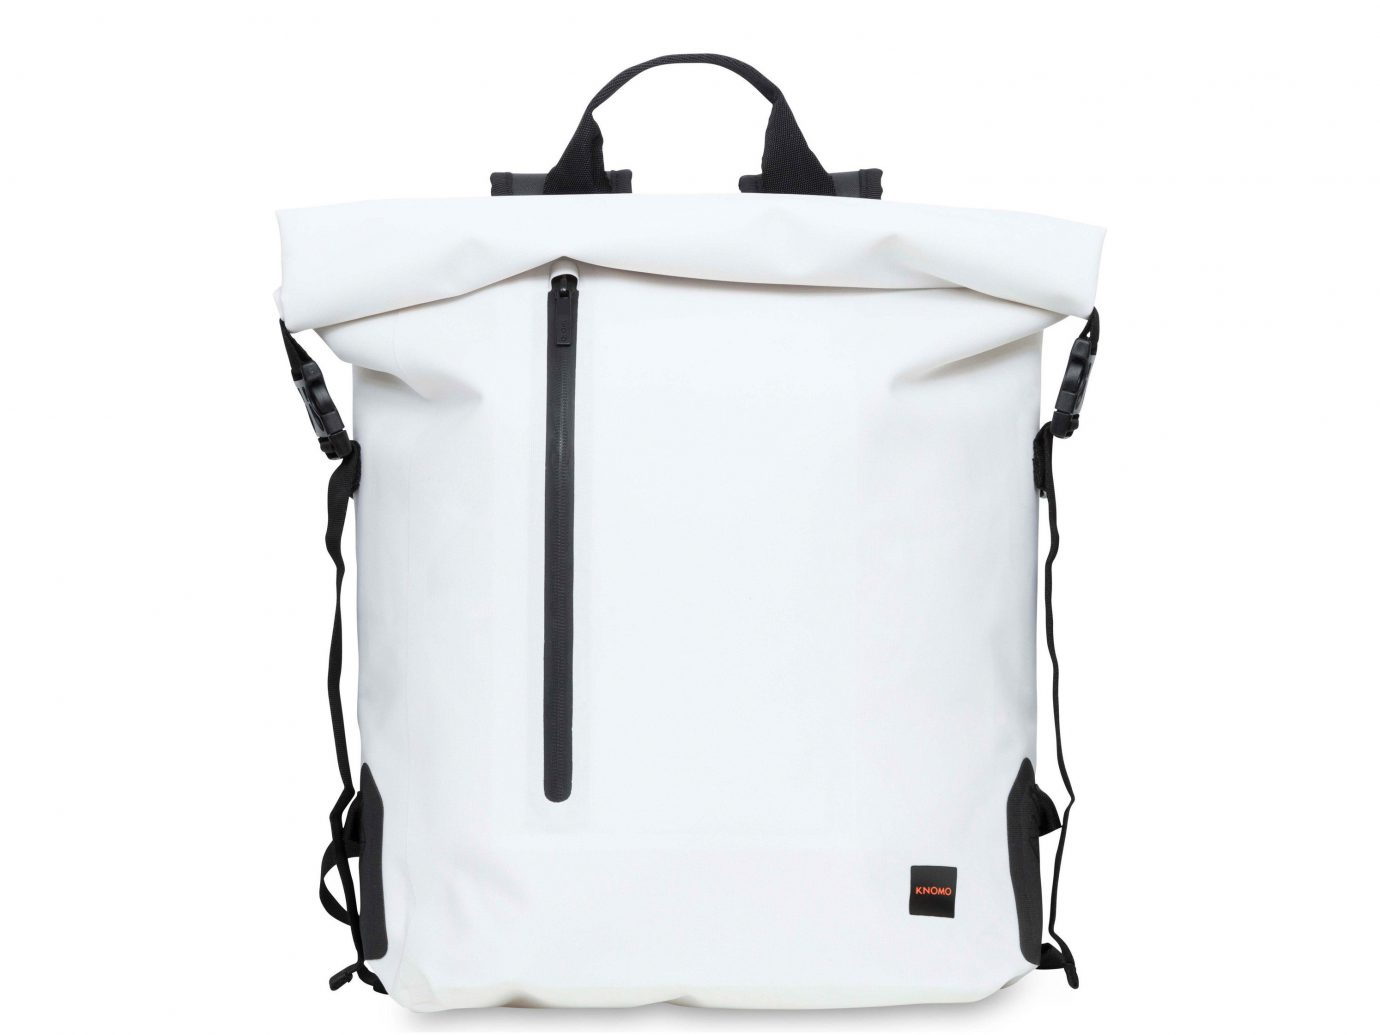 Style + Design white bag product product design shoulder bag kitchenware luggage & bags brand font pot